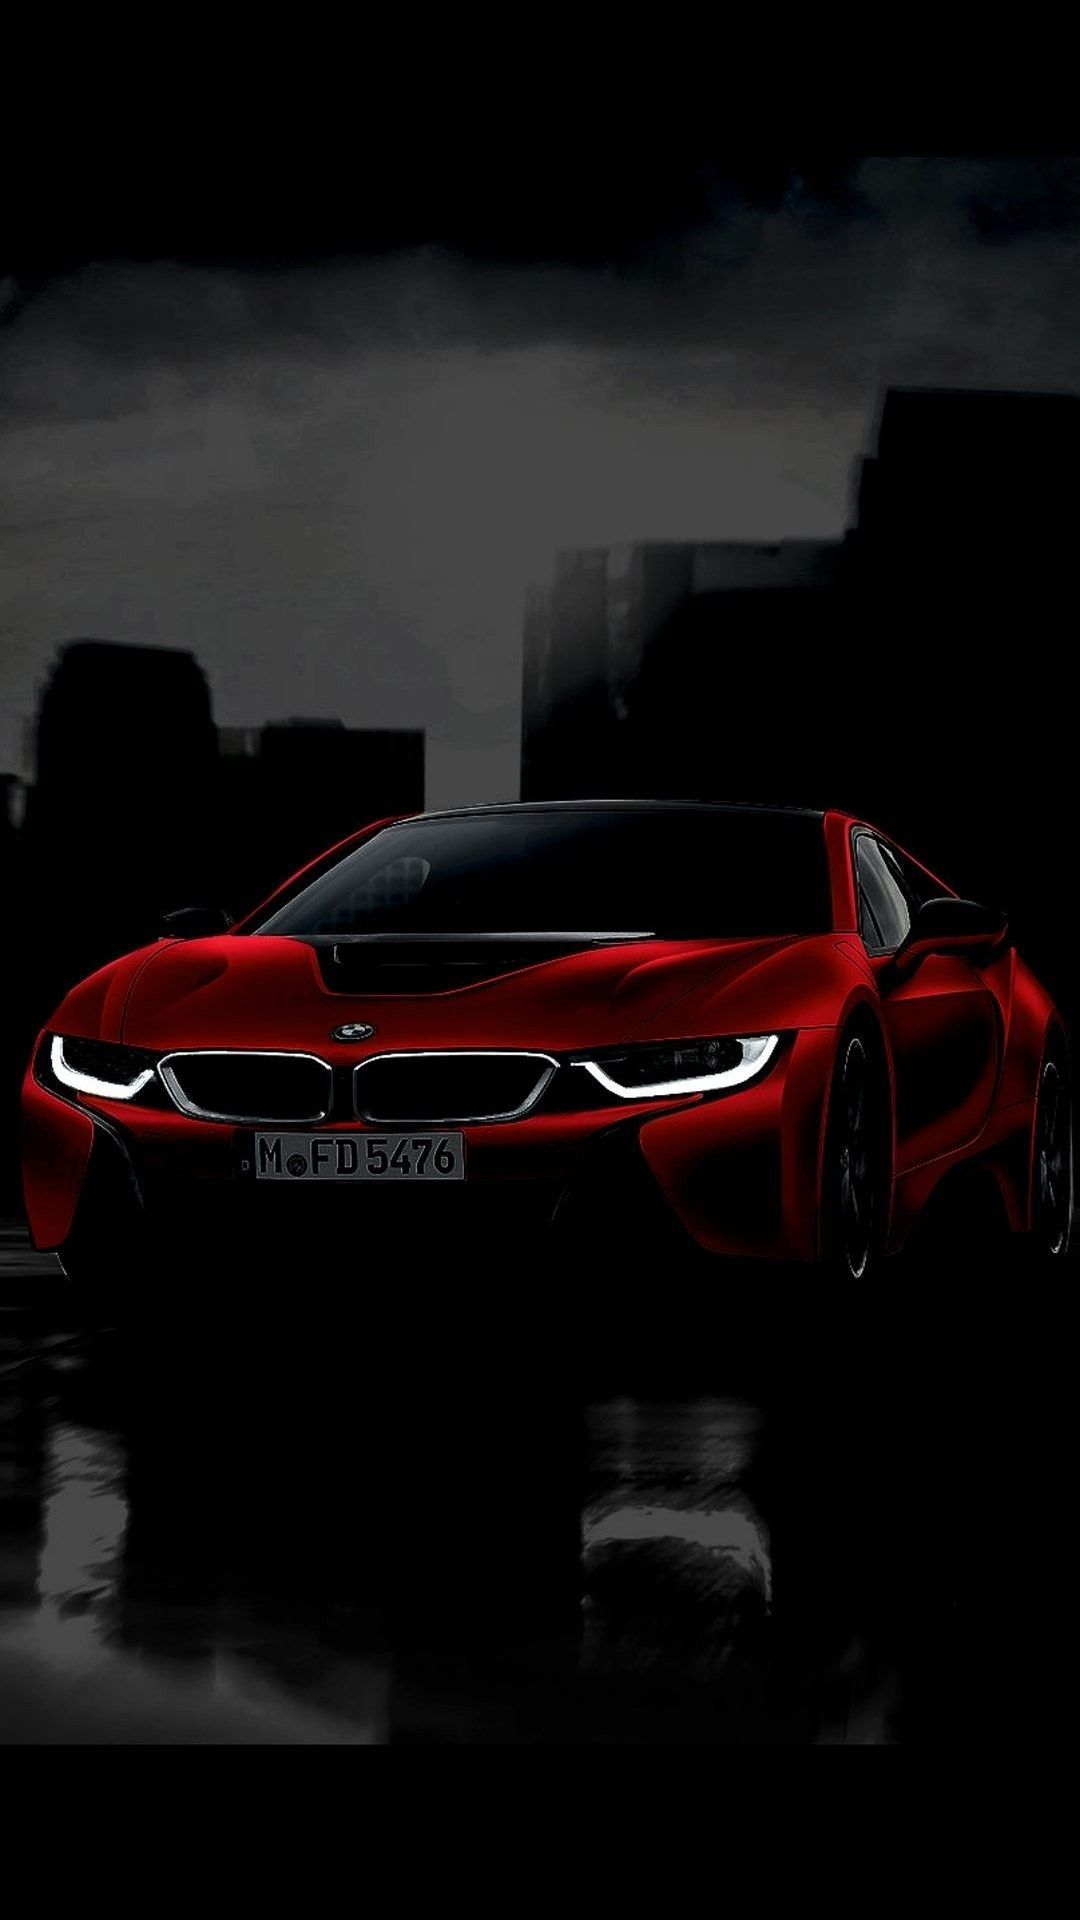 Supercar Wallpaper Mobile In 2020 Bmw I8 Supercars Wallpaper Super Cars